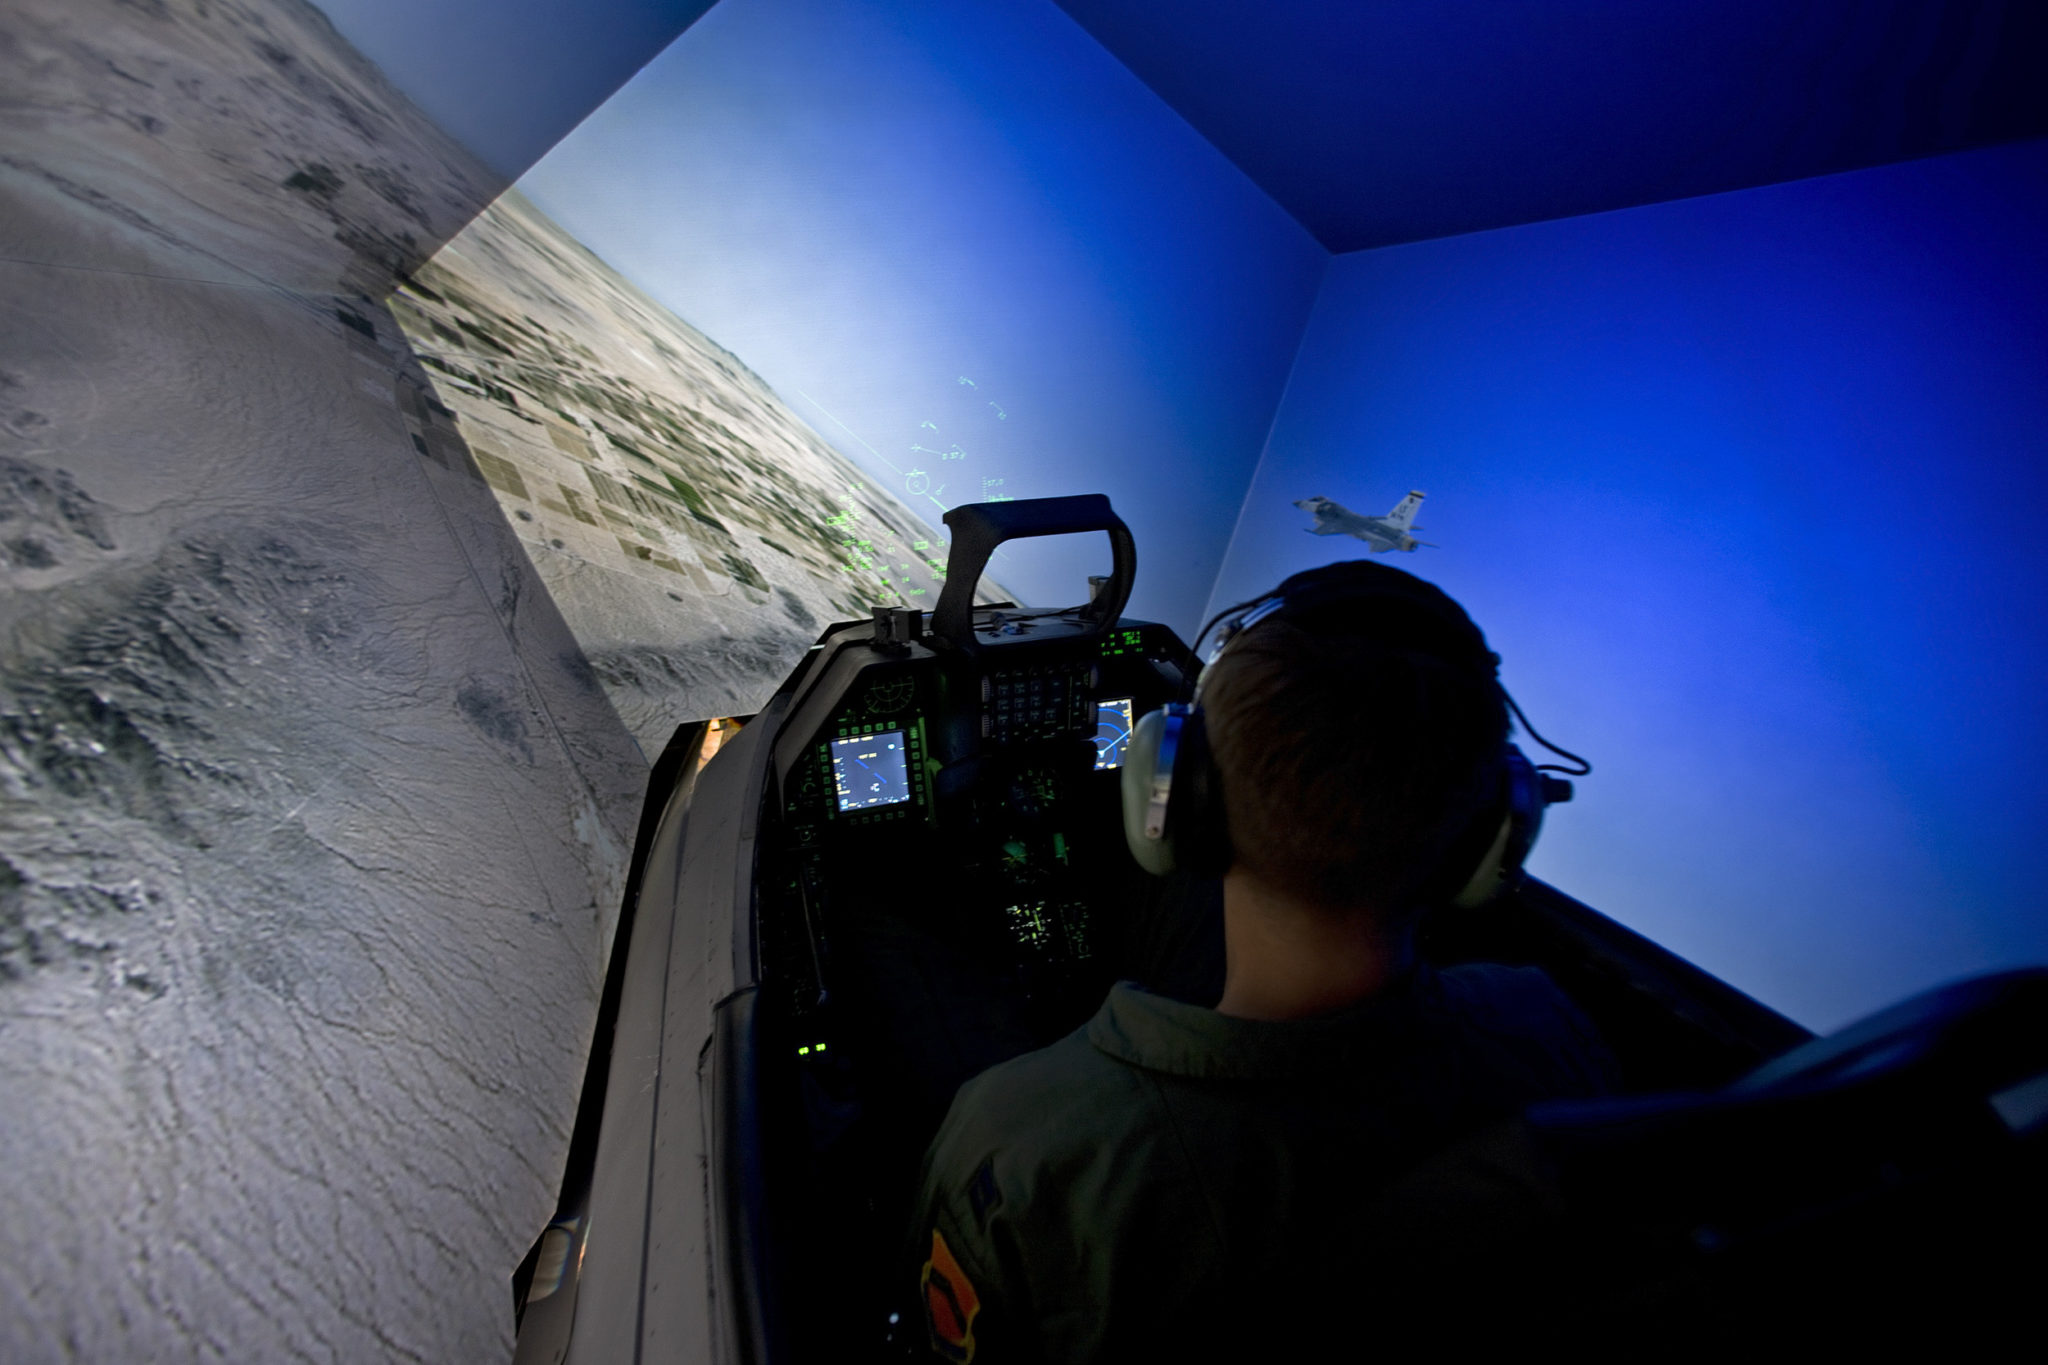 Let The (War) Games Begin: Army Buying High-Tech Training Sims